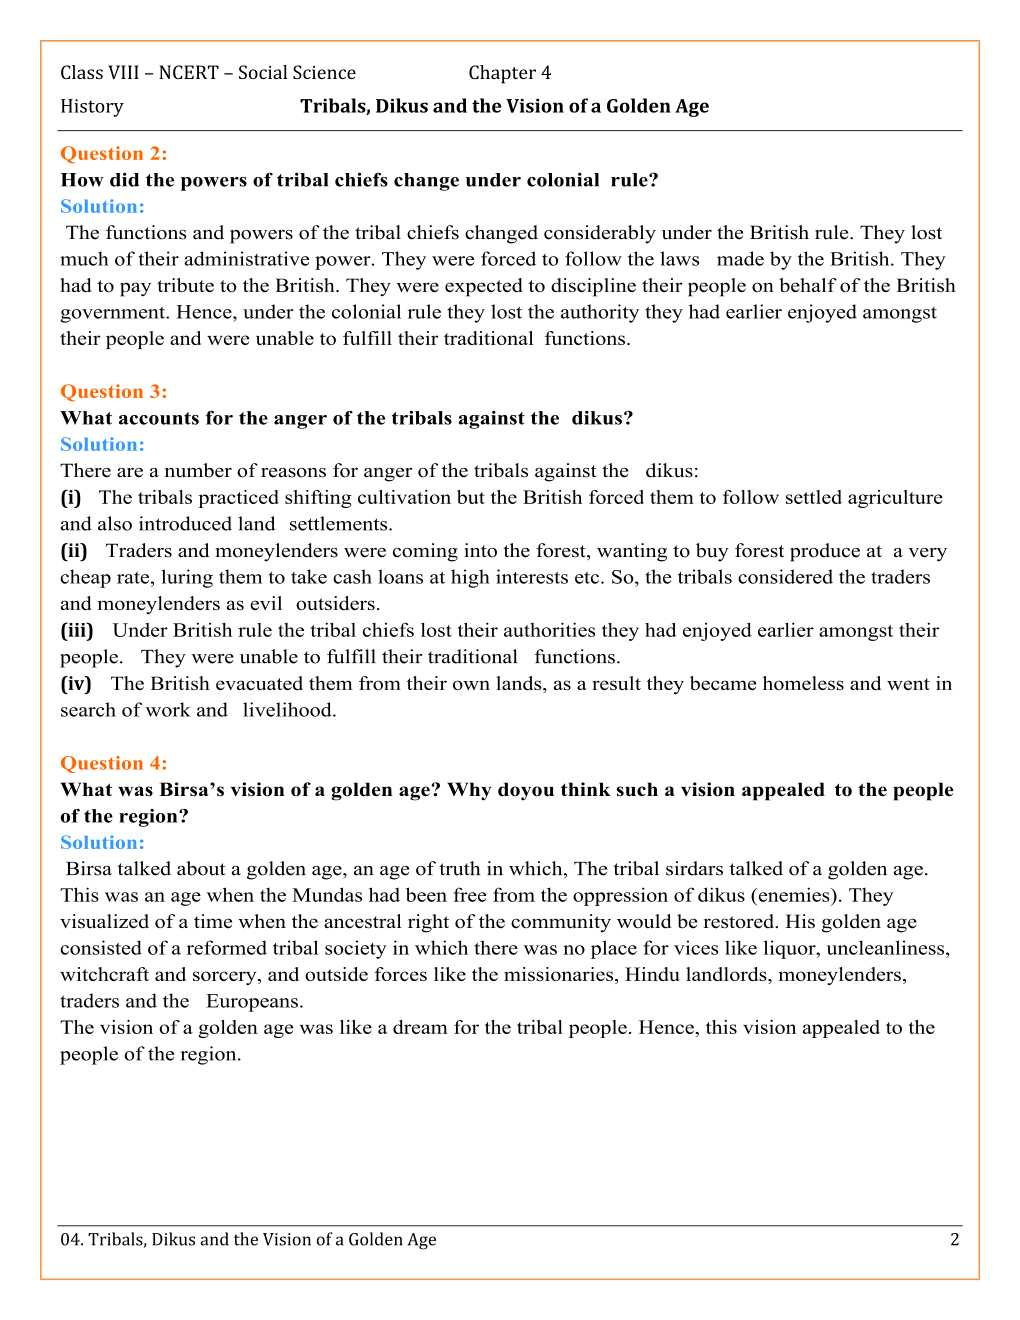 NCERT Solutions For Class 8 Social Science Our Pasts 3 Chapter 4